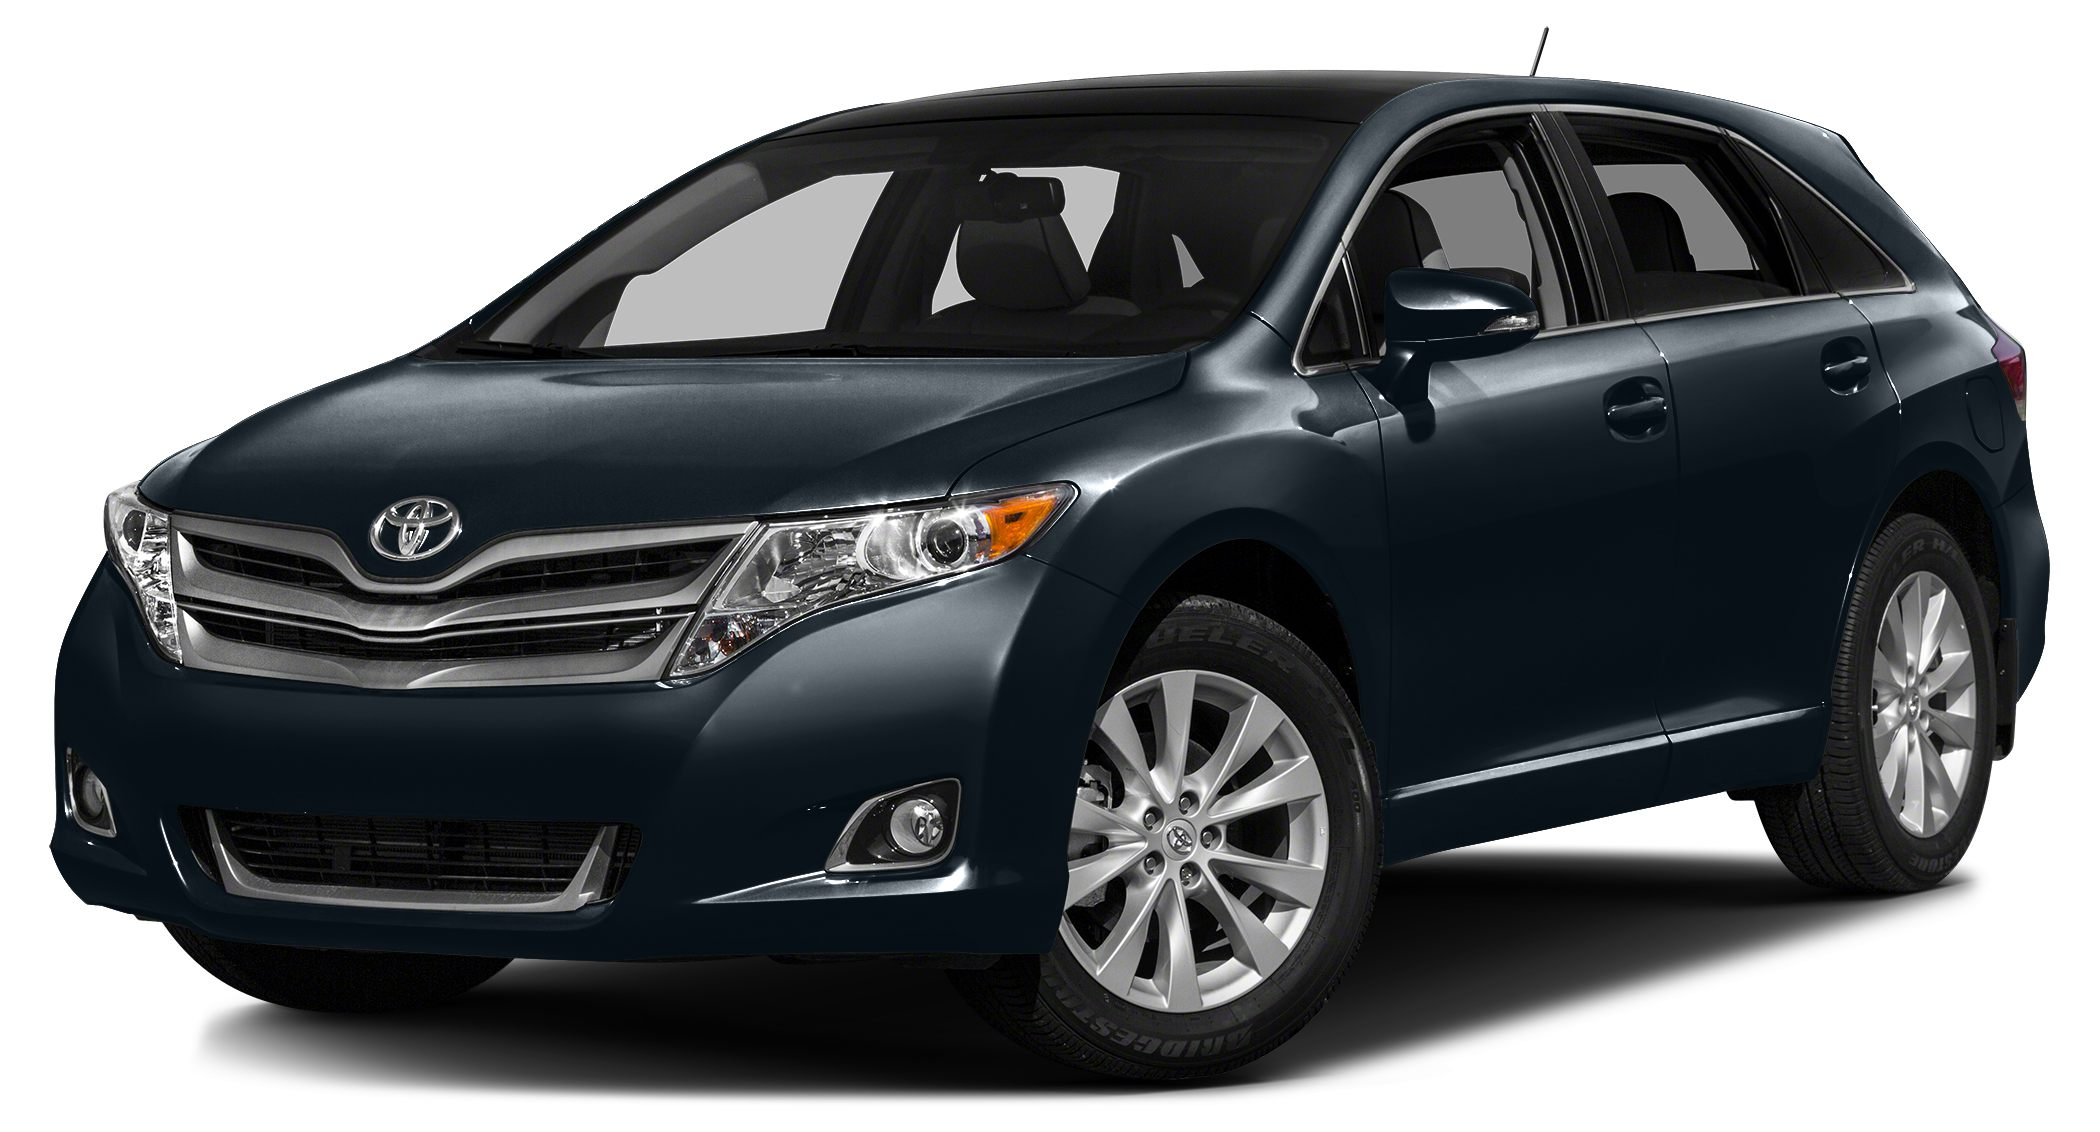 2015 Toyota Venza Limited EPA 25 MPG Hwy18 MPG City CARFAX 1-Owner GREAT MILES 29250 Heated L